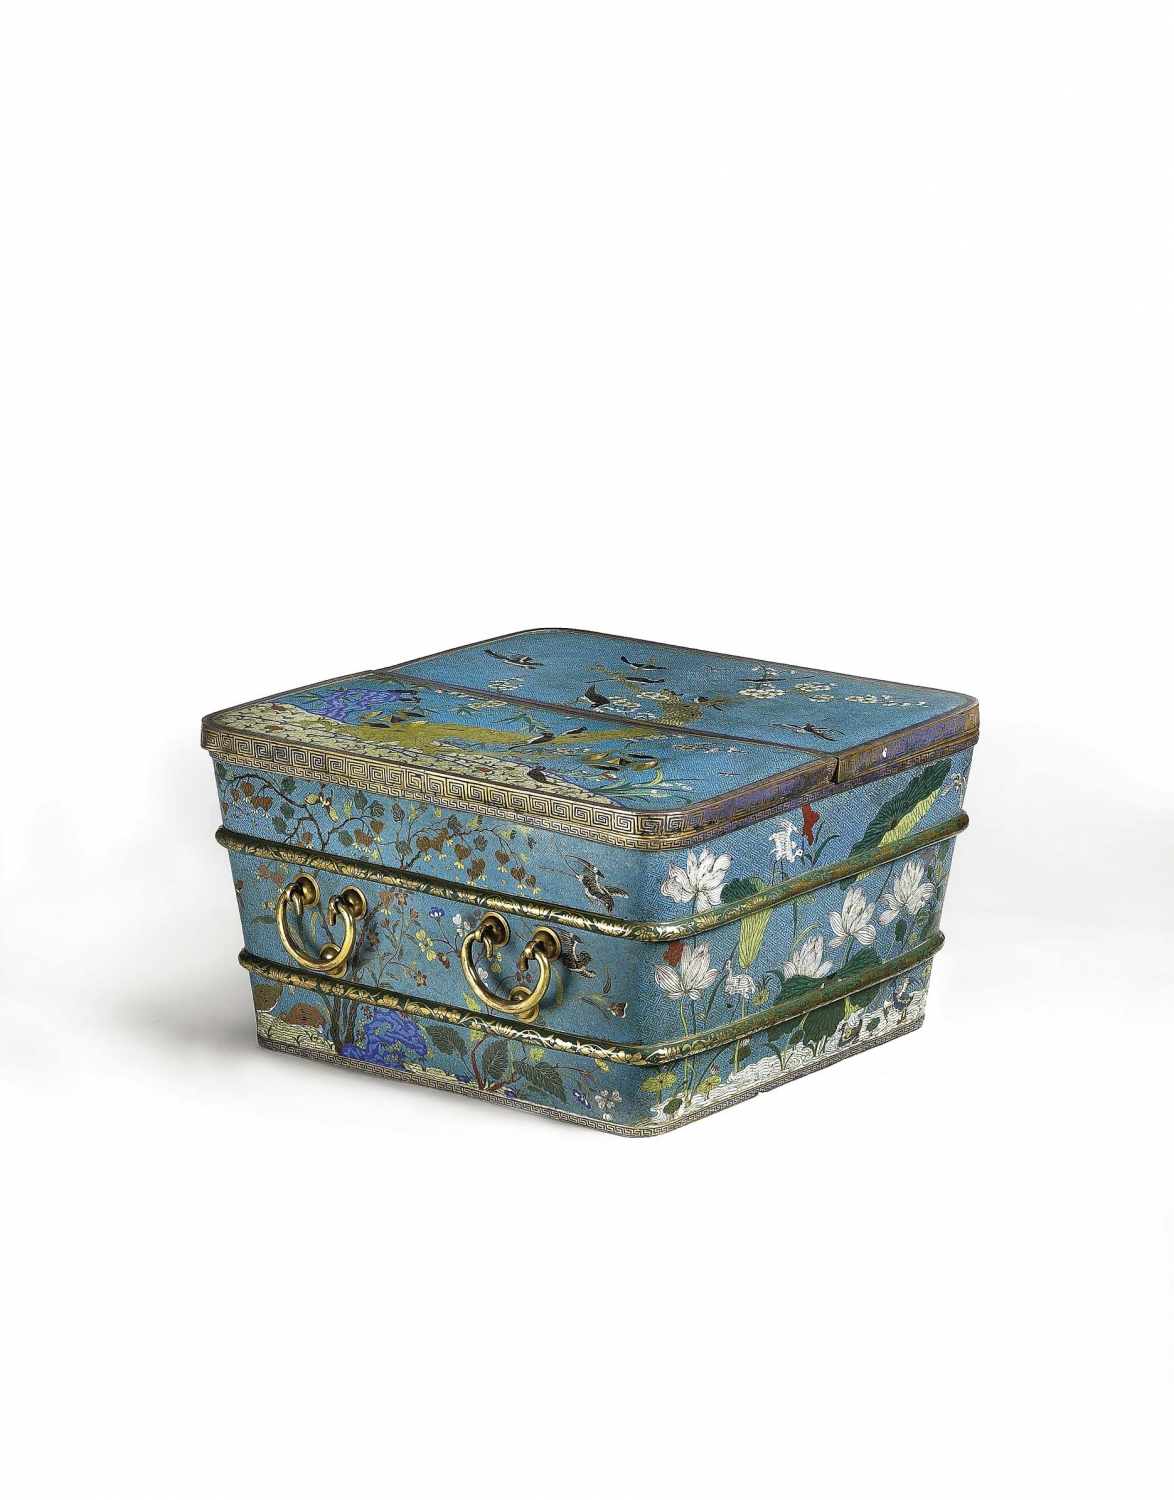 A cloisonné enamel square ice chest